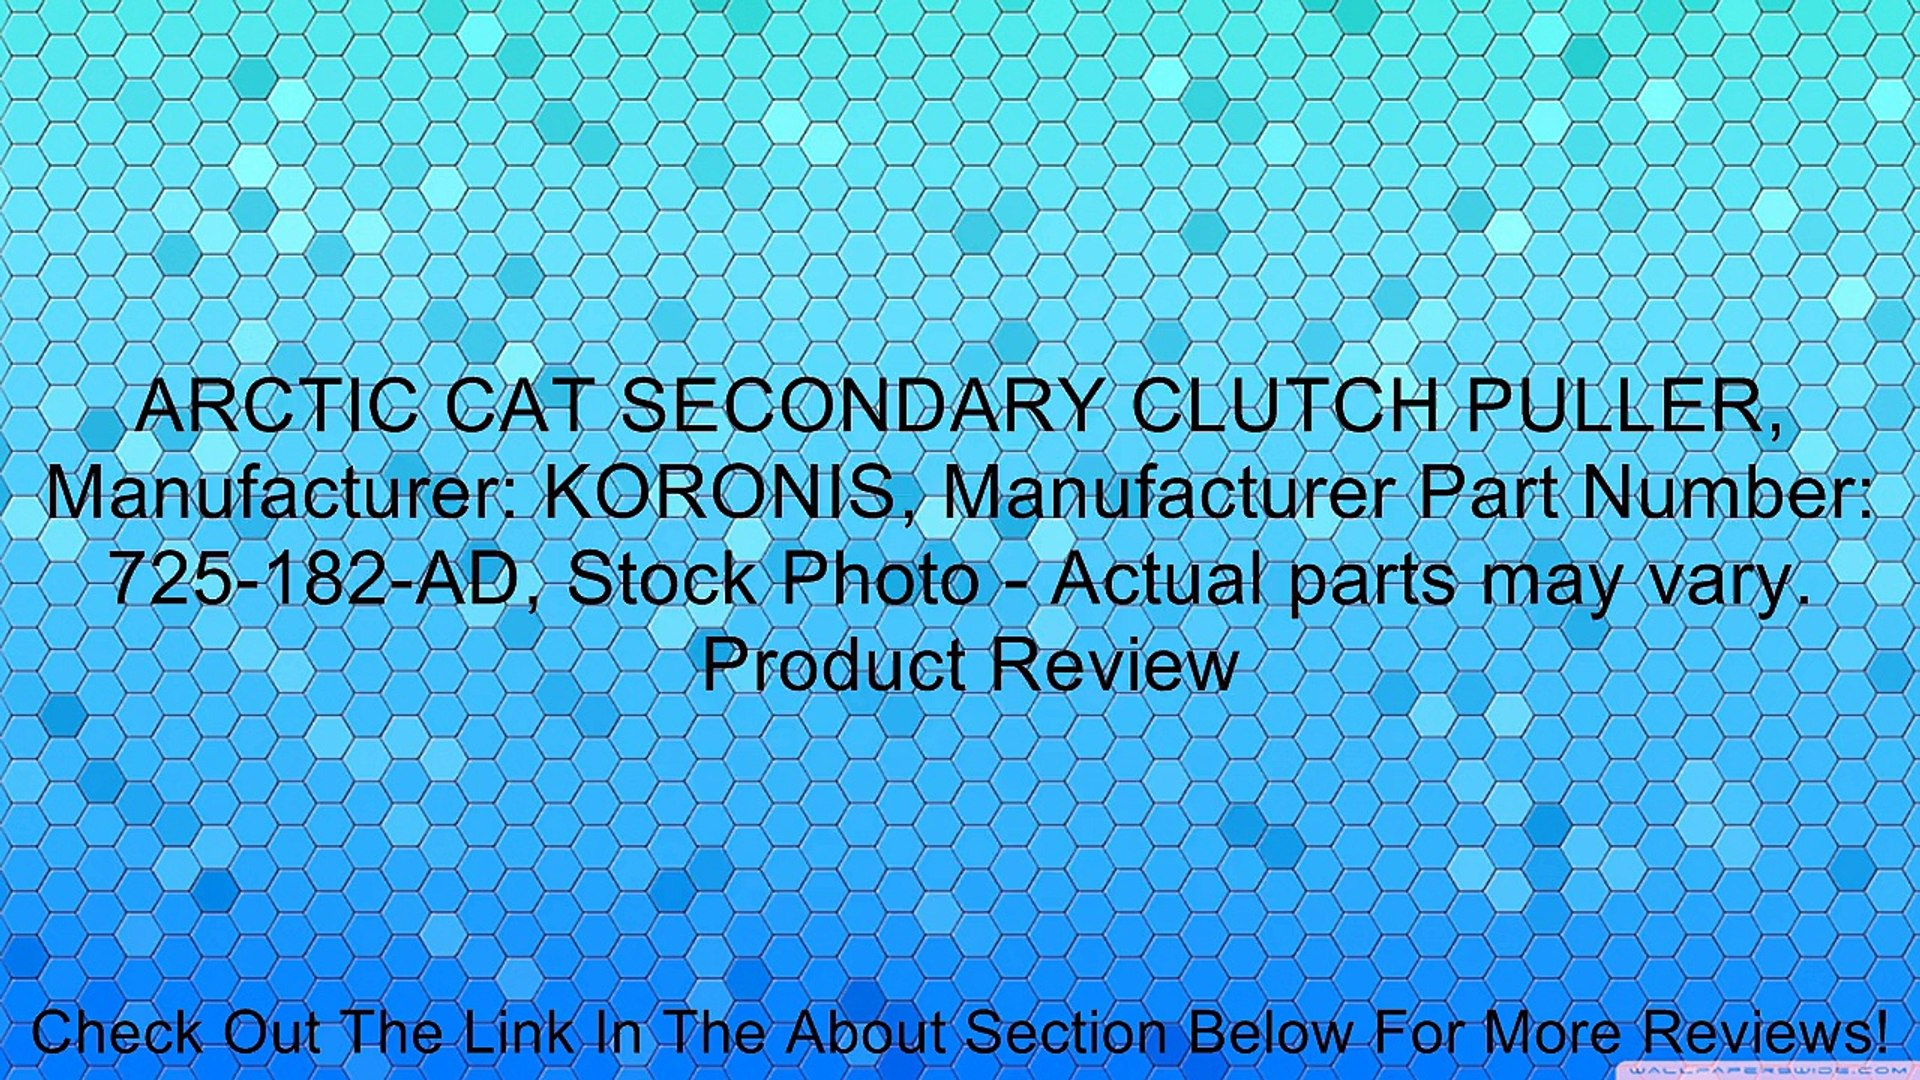 ARCTIC CAT SECONDARY CLUTCH PULLER, Manufacturer: KORONIS, Manufacturer  Part Number: 725-182-AD, Stock Photo - Actual parts may vary  Review